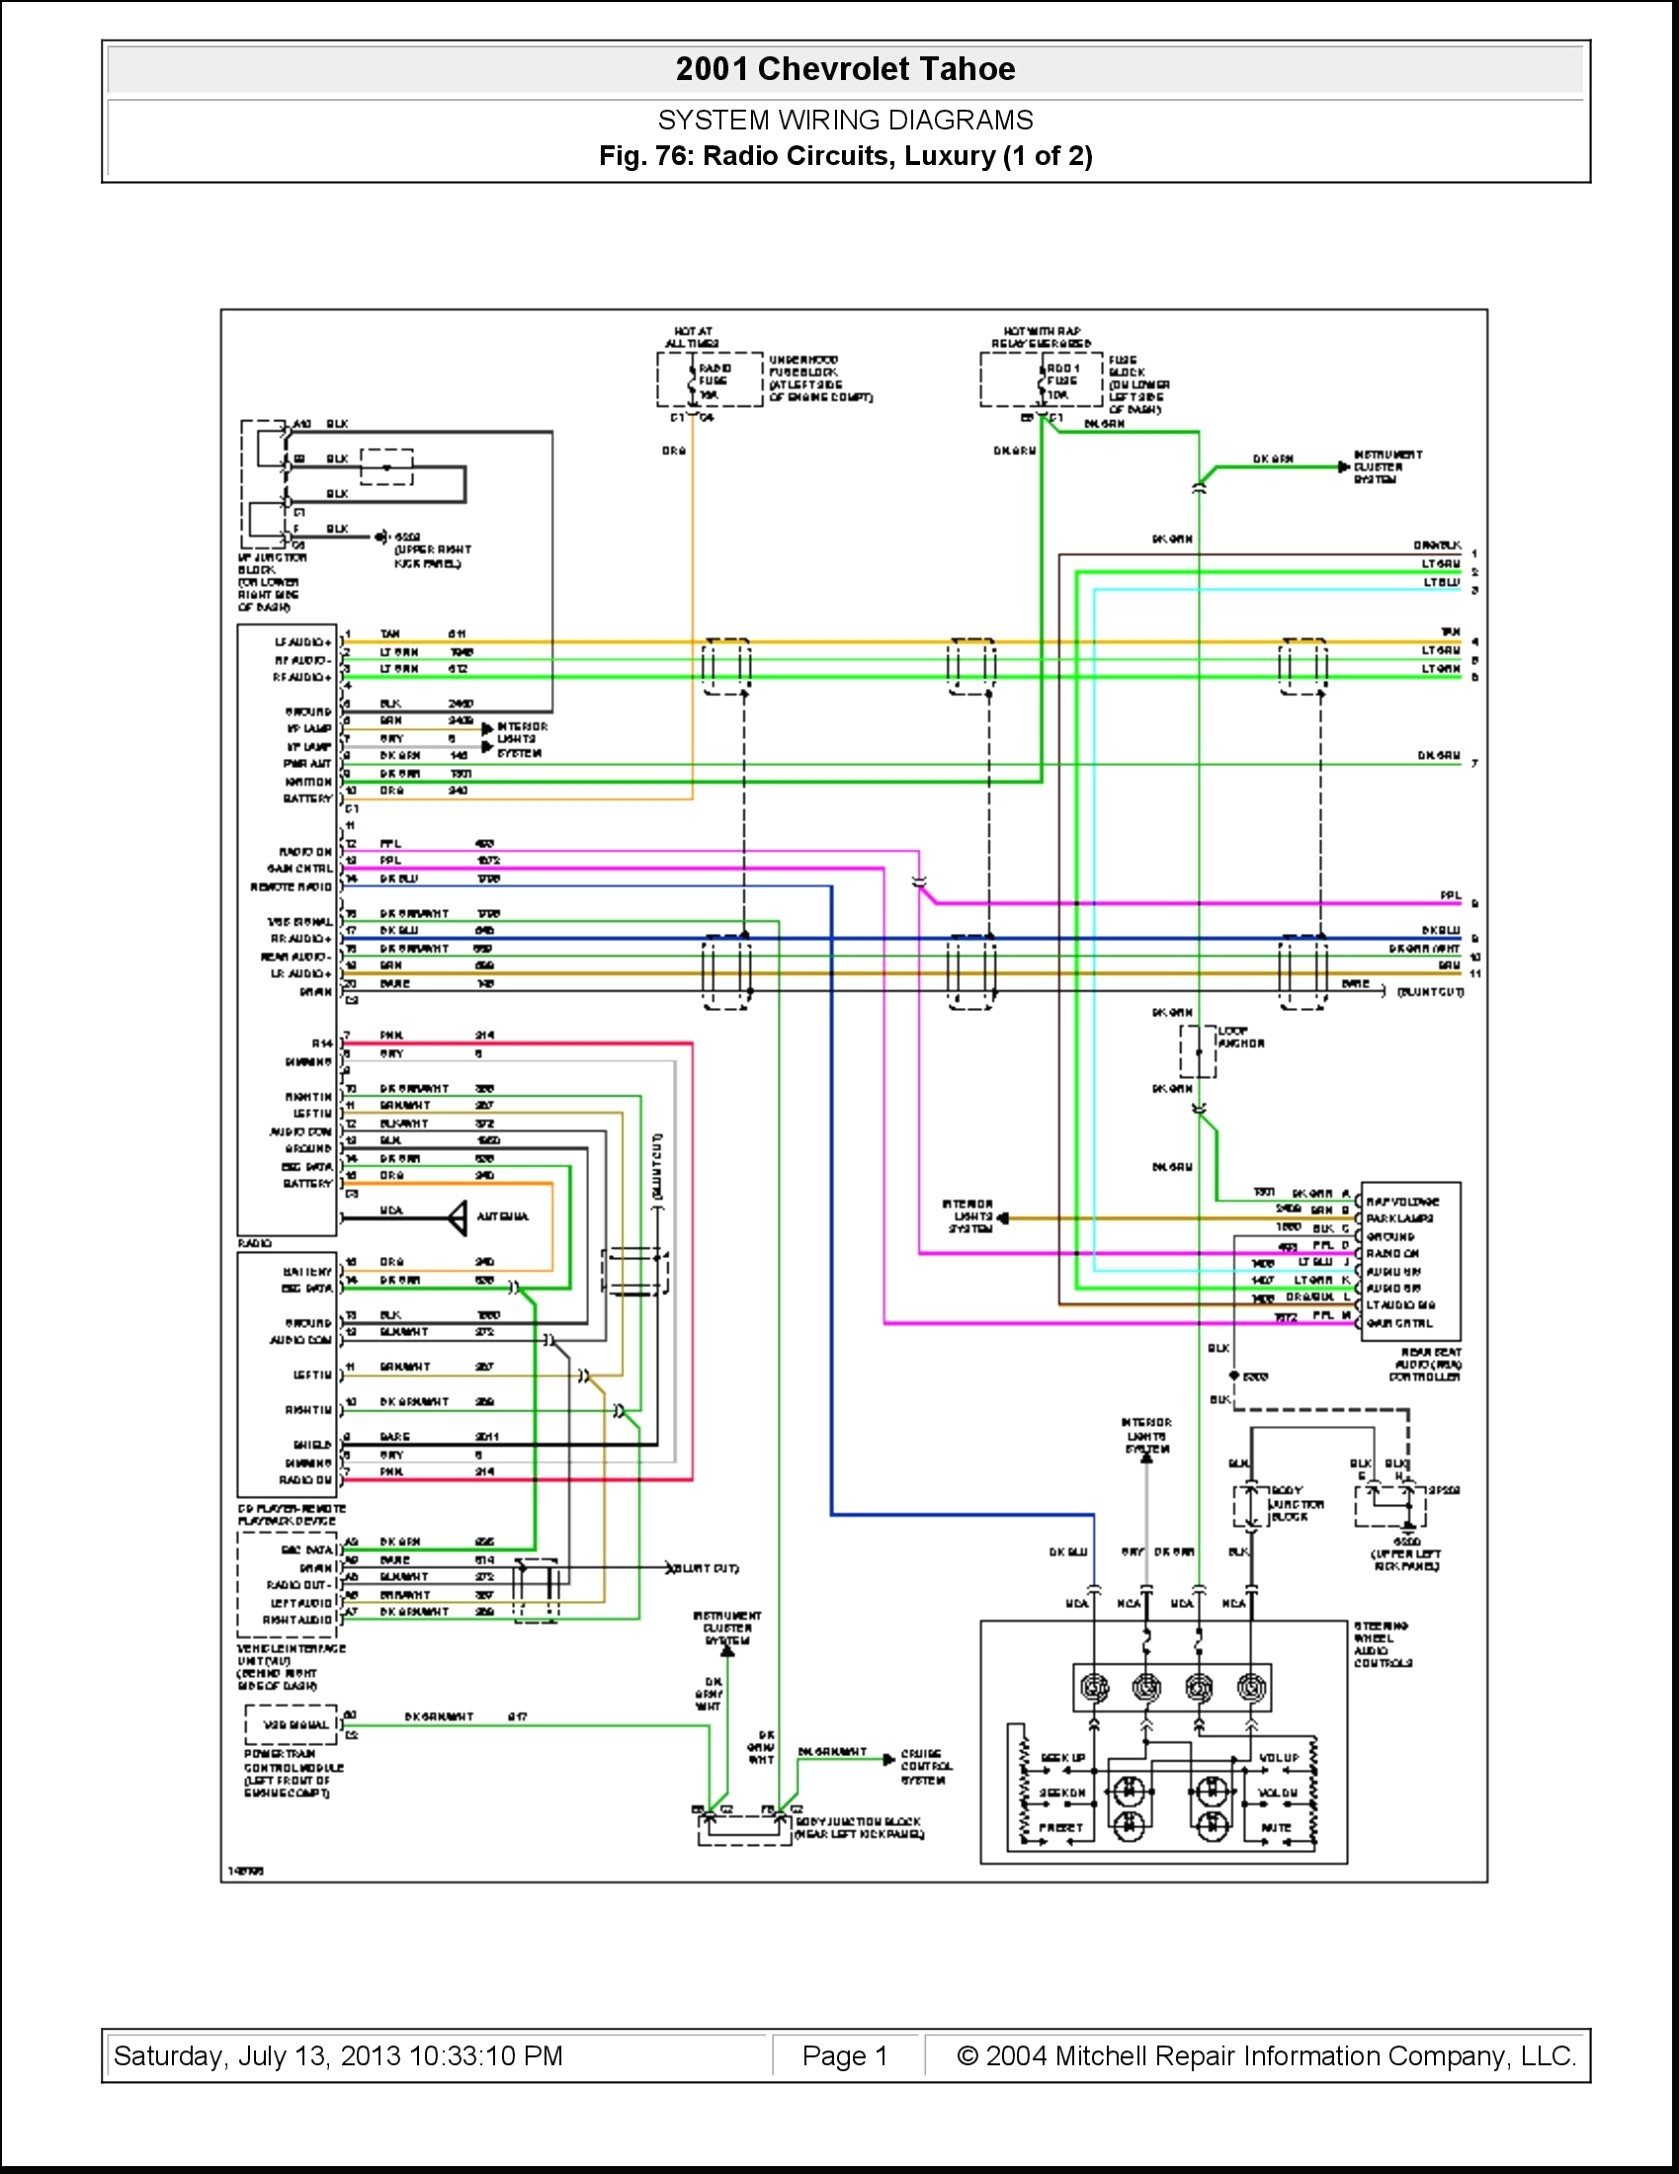 2005 Chevy Equinox Engine Diagram 2006 Chevy Wiring Diagram Wiring Diagram toolbox Of 2005 Chevy Equinox Engine Diagram 2013 Chevrolet Equinox Specs and Prices